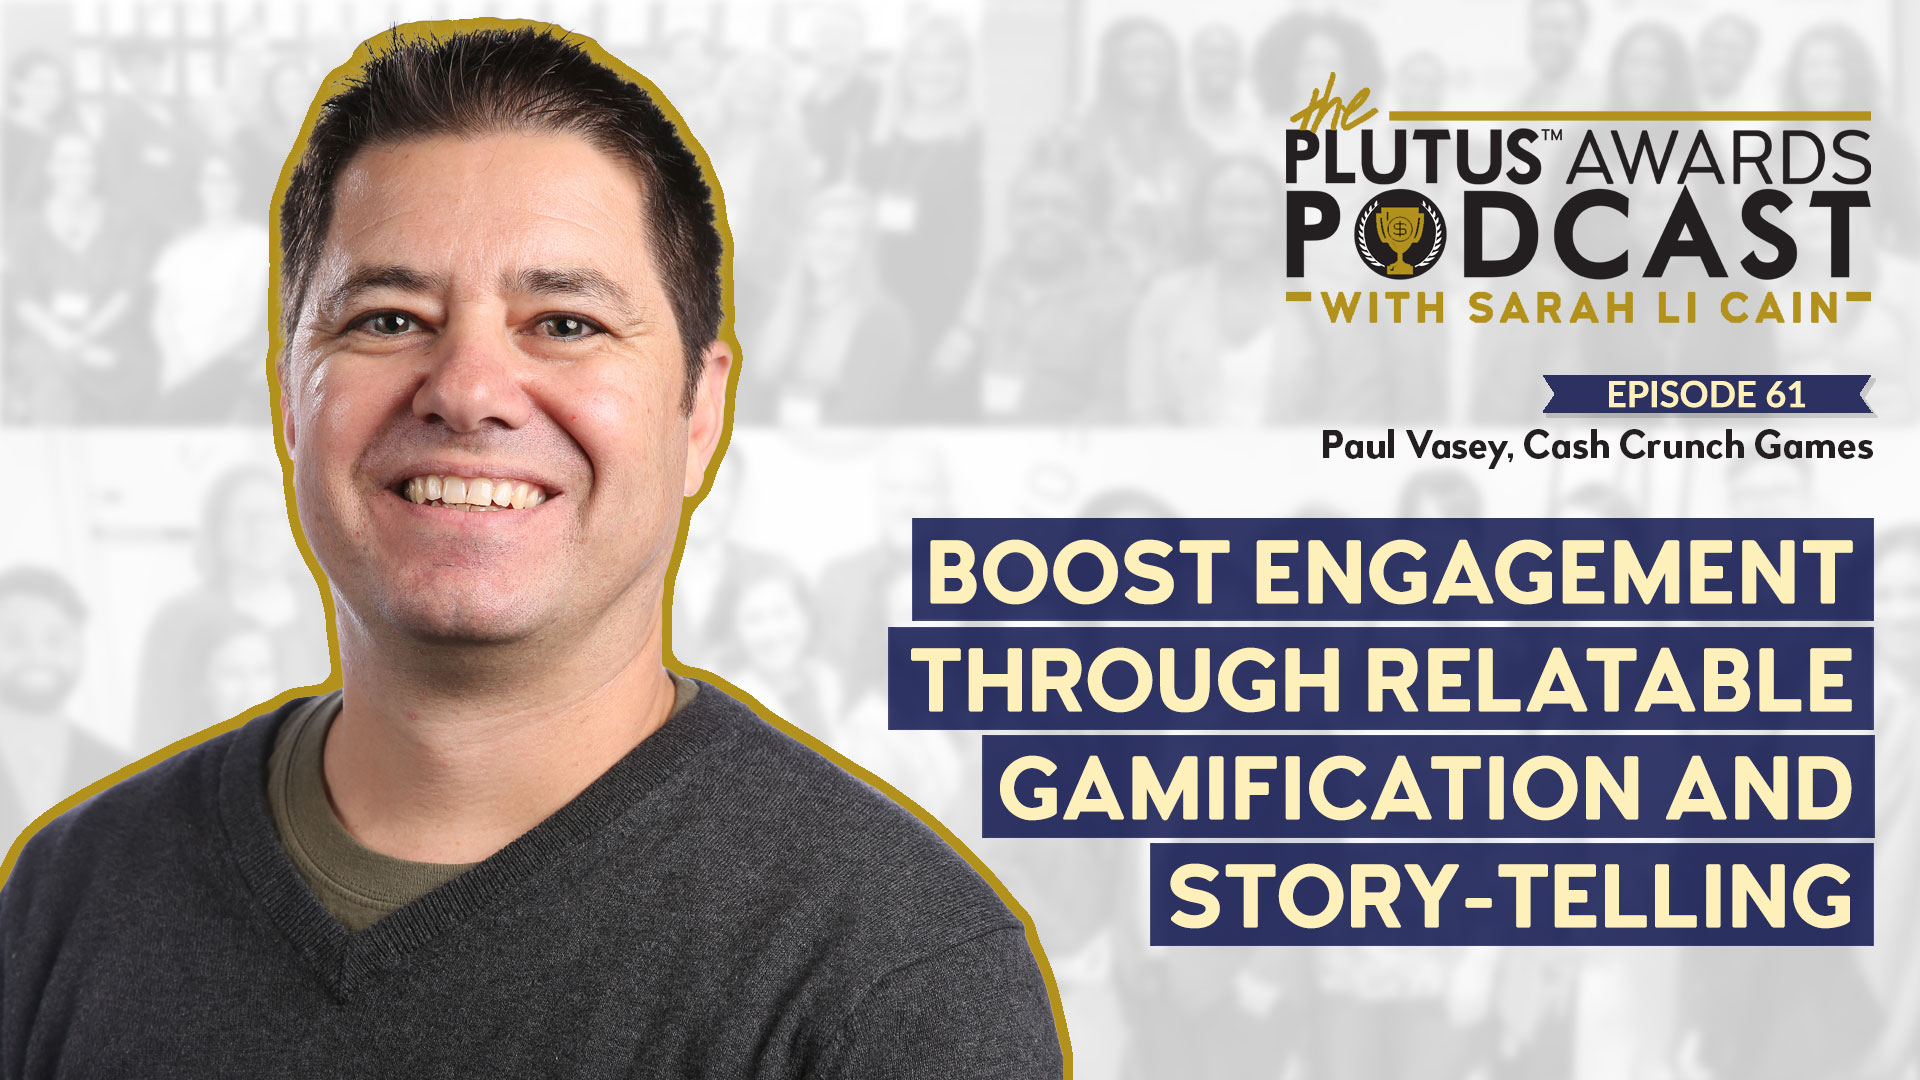 Plutus Awards Podcast - Paul Vasey Featured Image